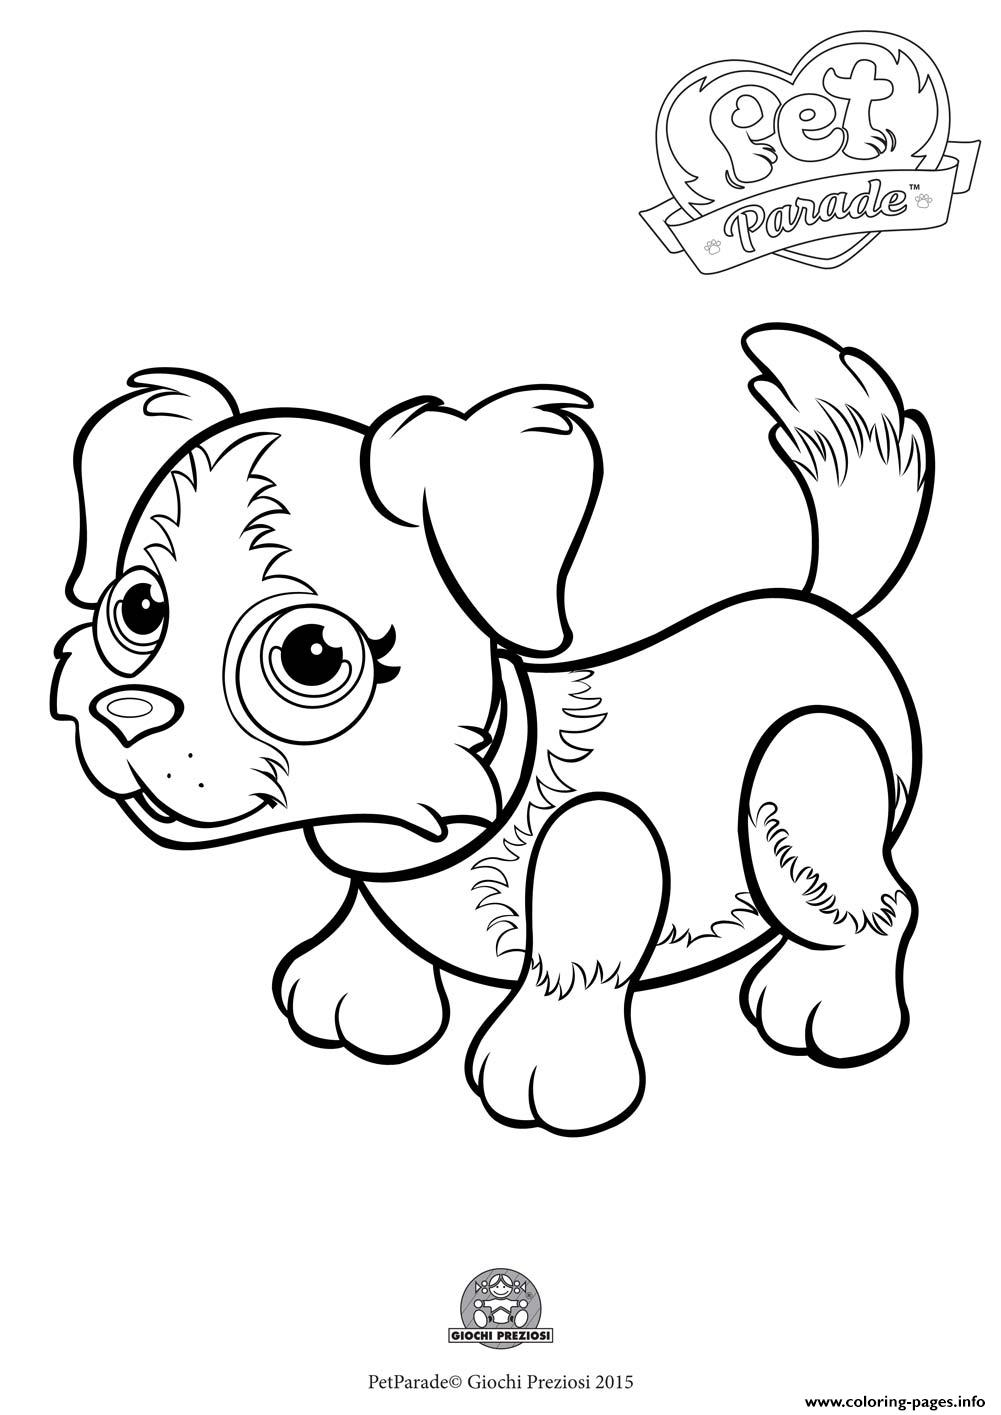 1001x1415 Pet Parade Cute Dog Border Collie Coloring Pages Printable